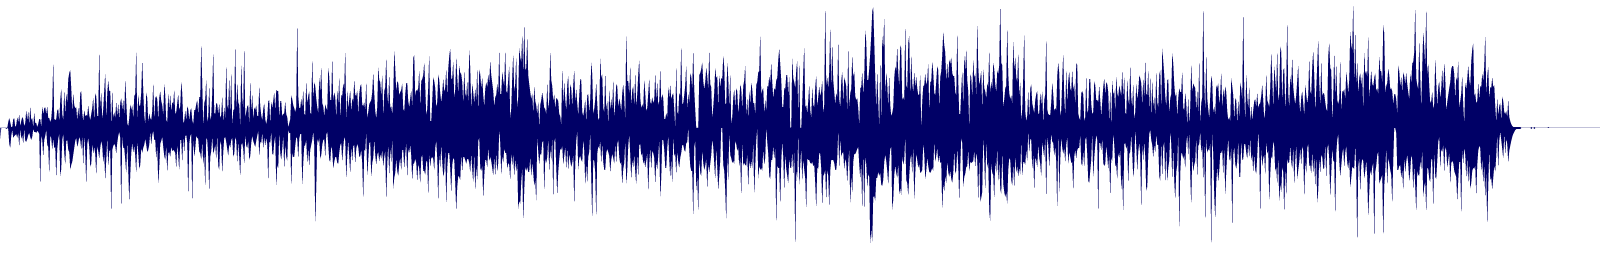 waveform of track #159536